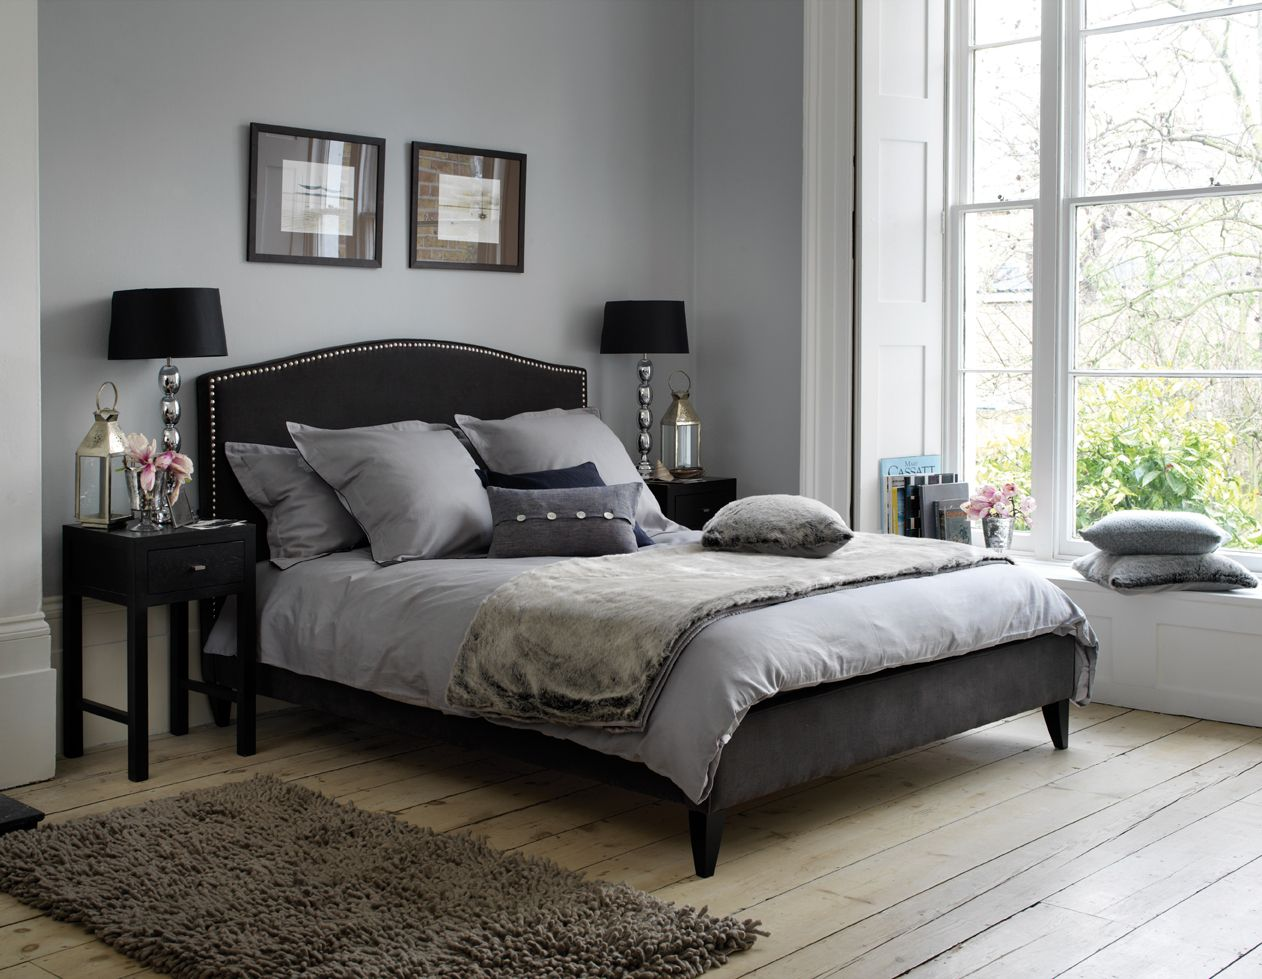 Bedrooms Calm Grey Colored Wall Beautiful Bedroom Design With